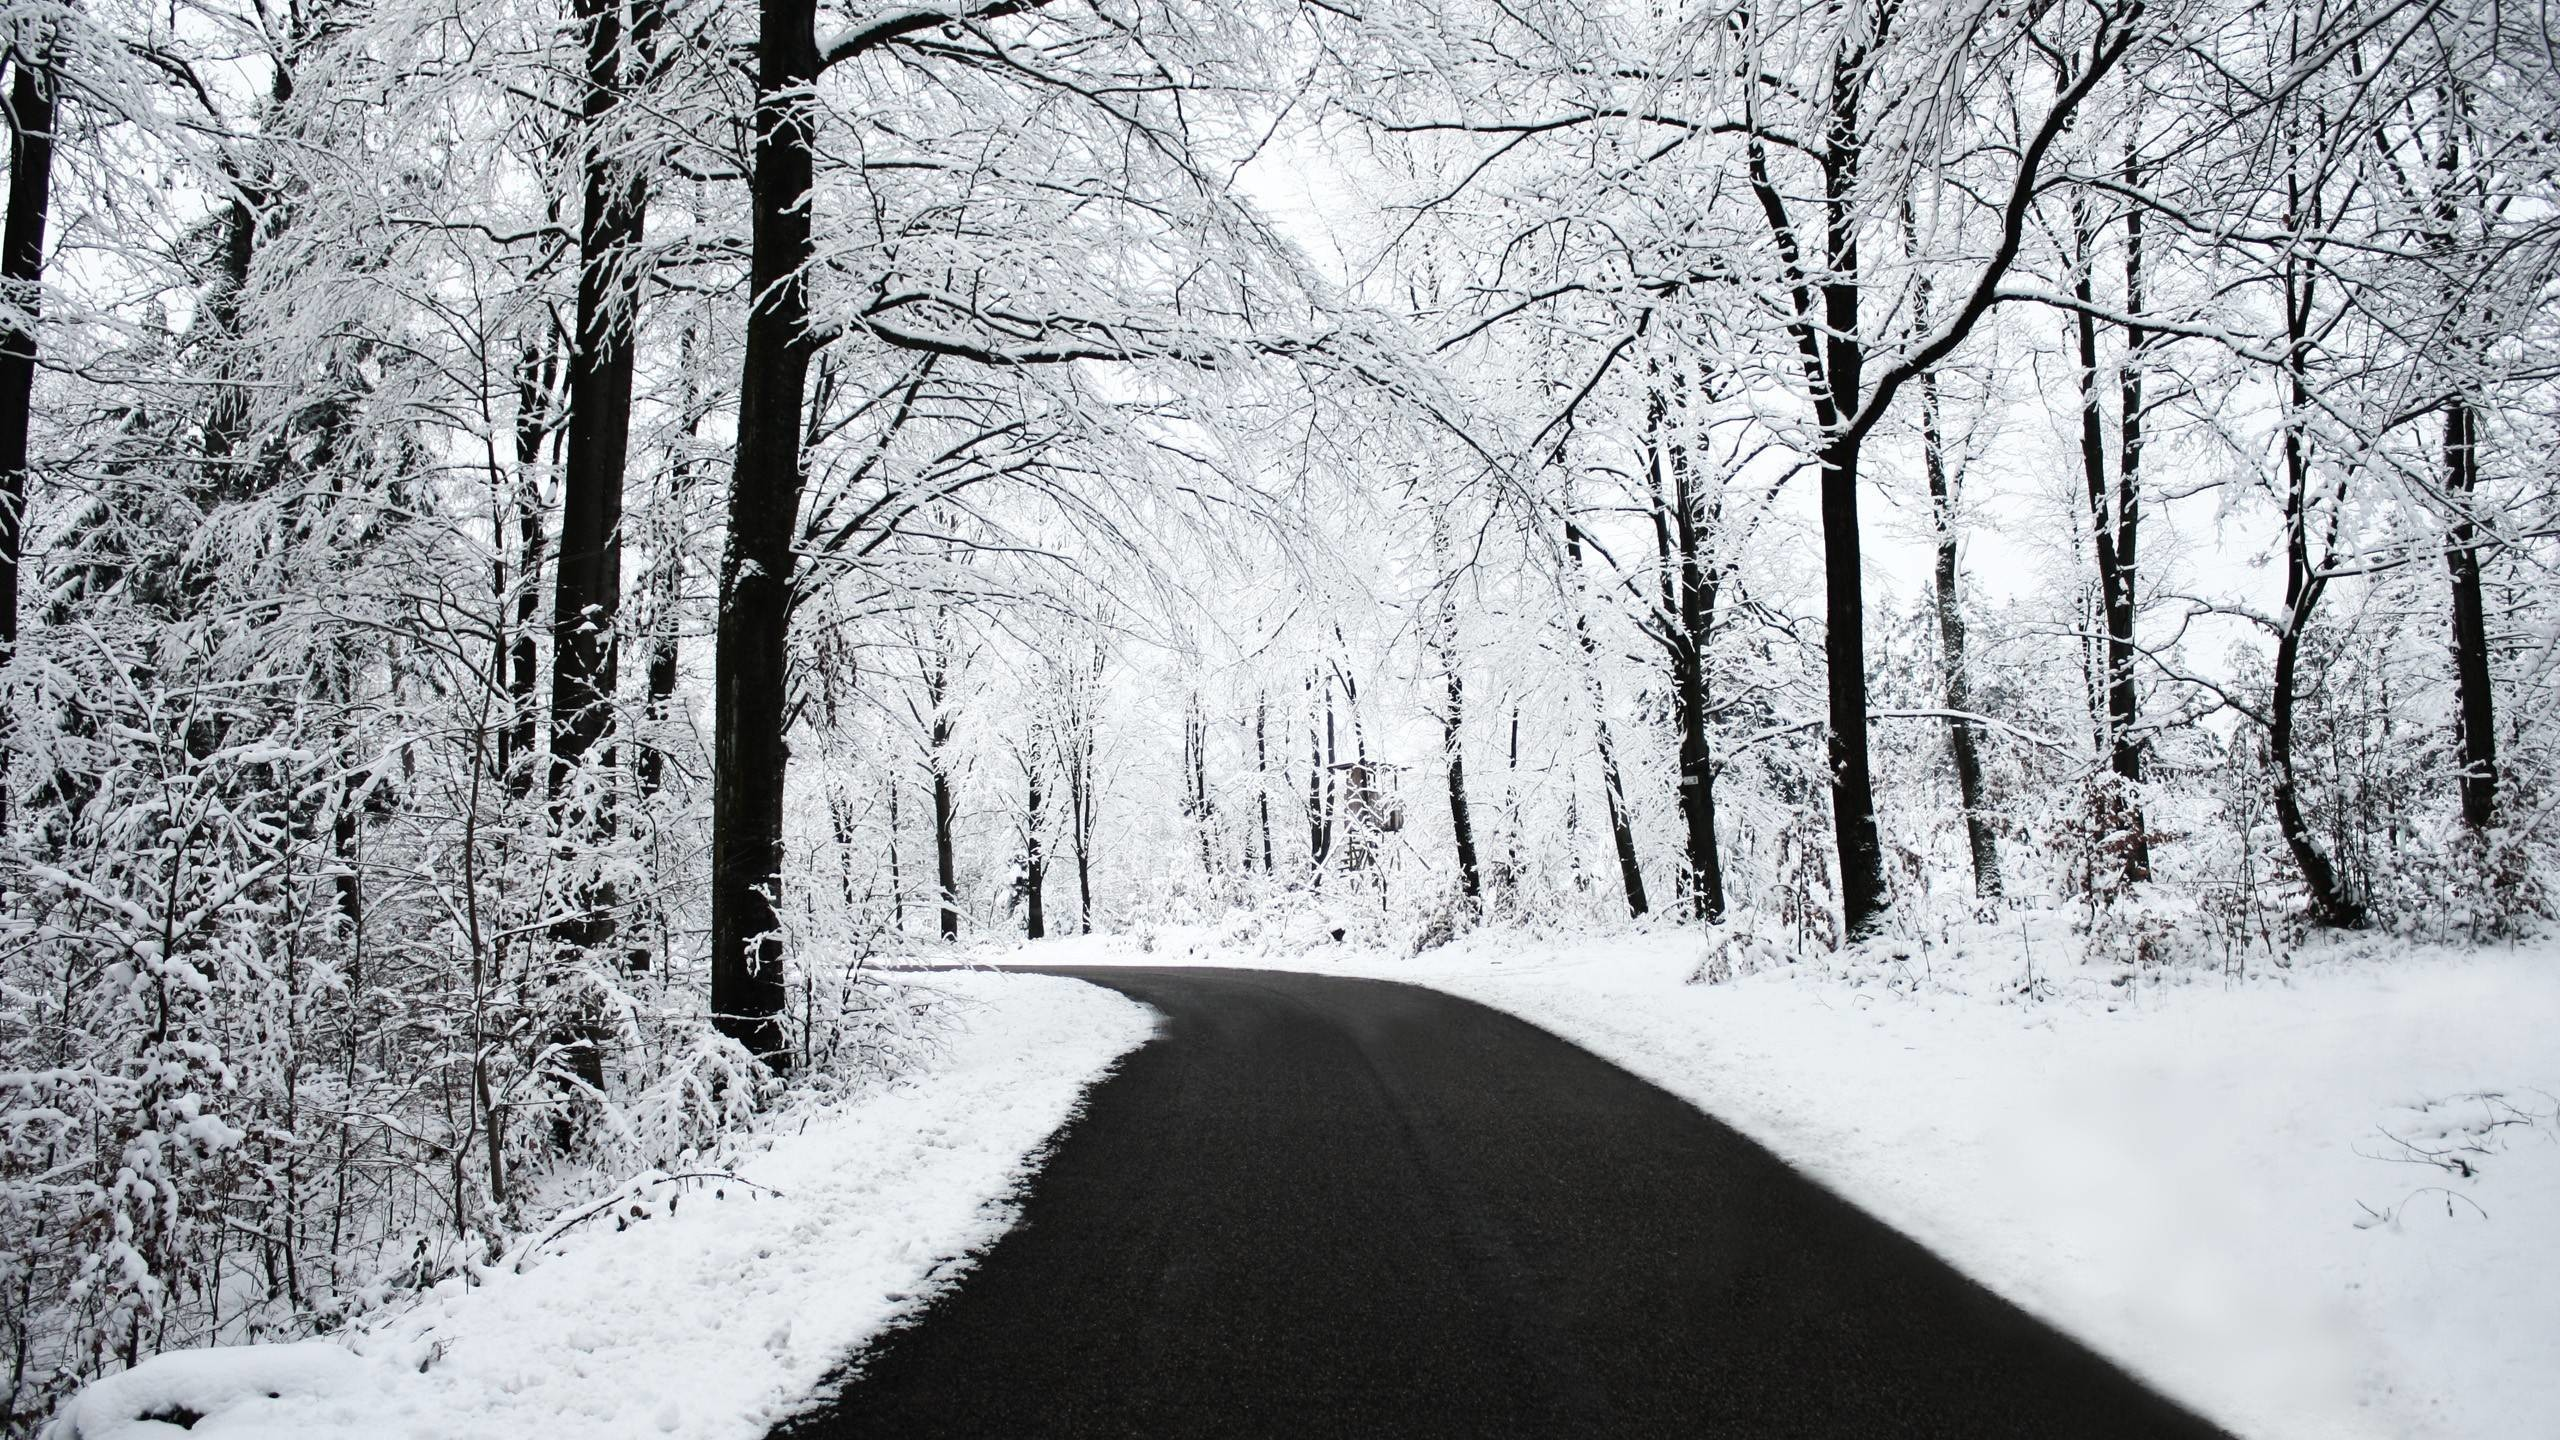 Snowy Forest Picture Wallpaper – HD Wallpapers